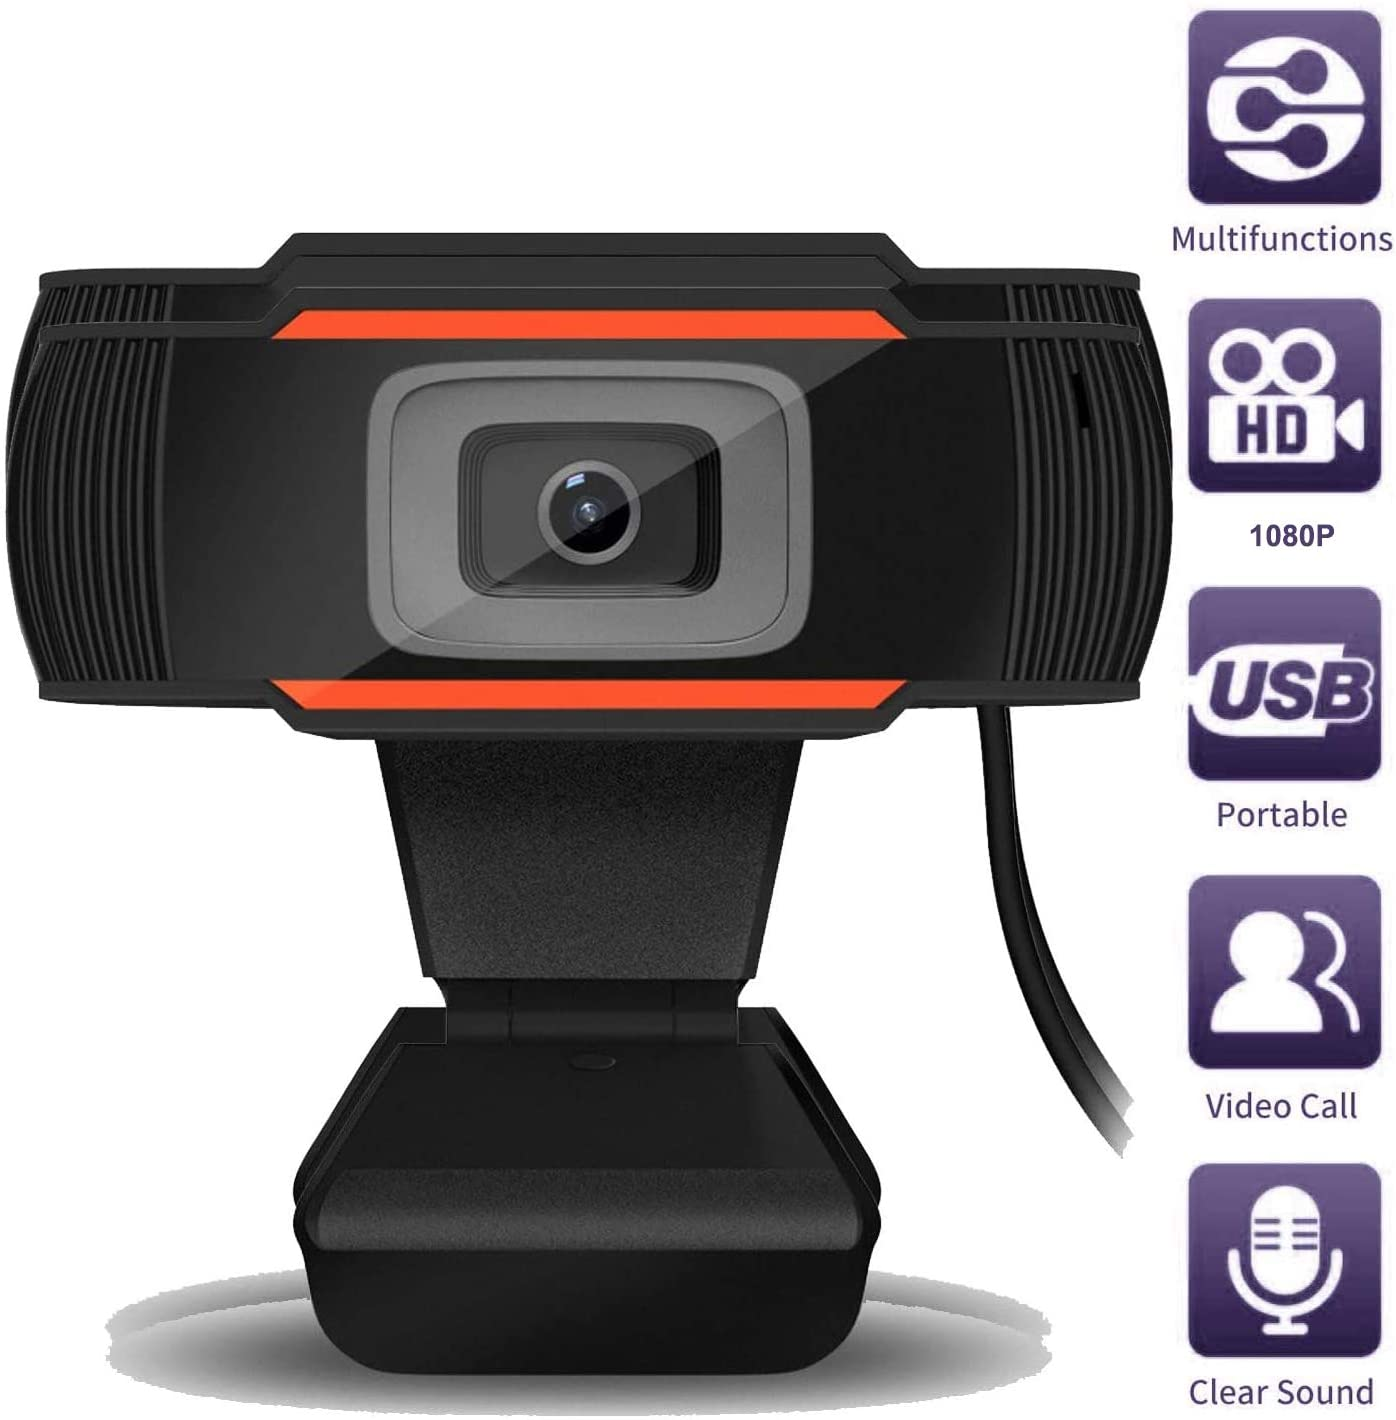 HD 1080P Webcam, 5 Megapixel Streaming Web Camera with Noise Reduction Microphone, Widescreen USB Computer Camera or Streaming Gaming Conferencing PC Laptop Desktop